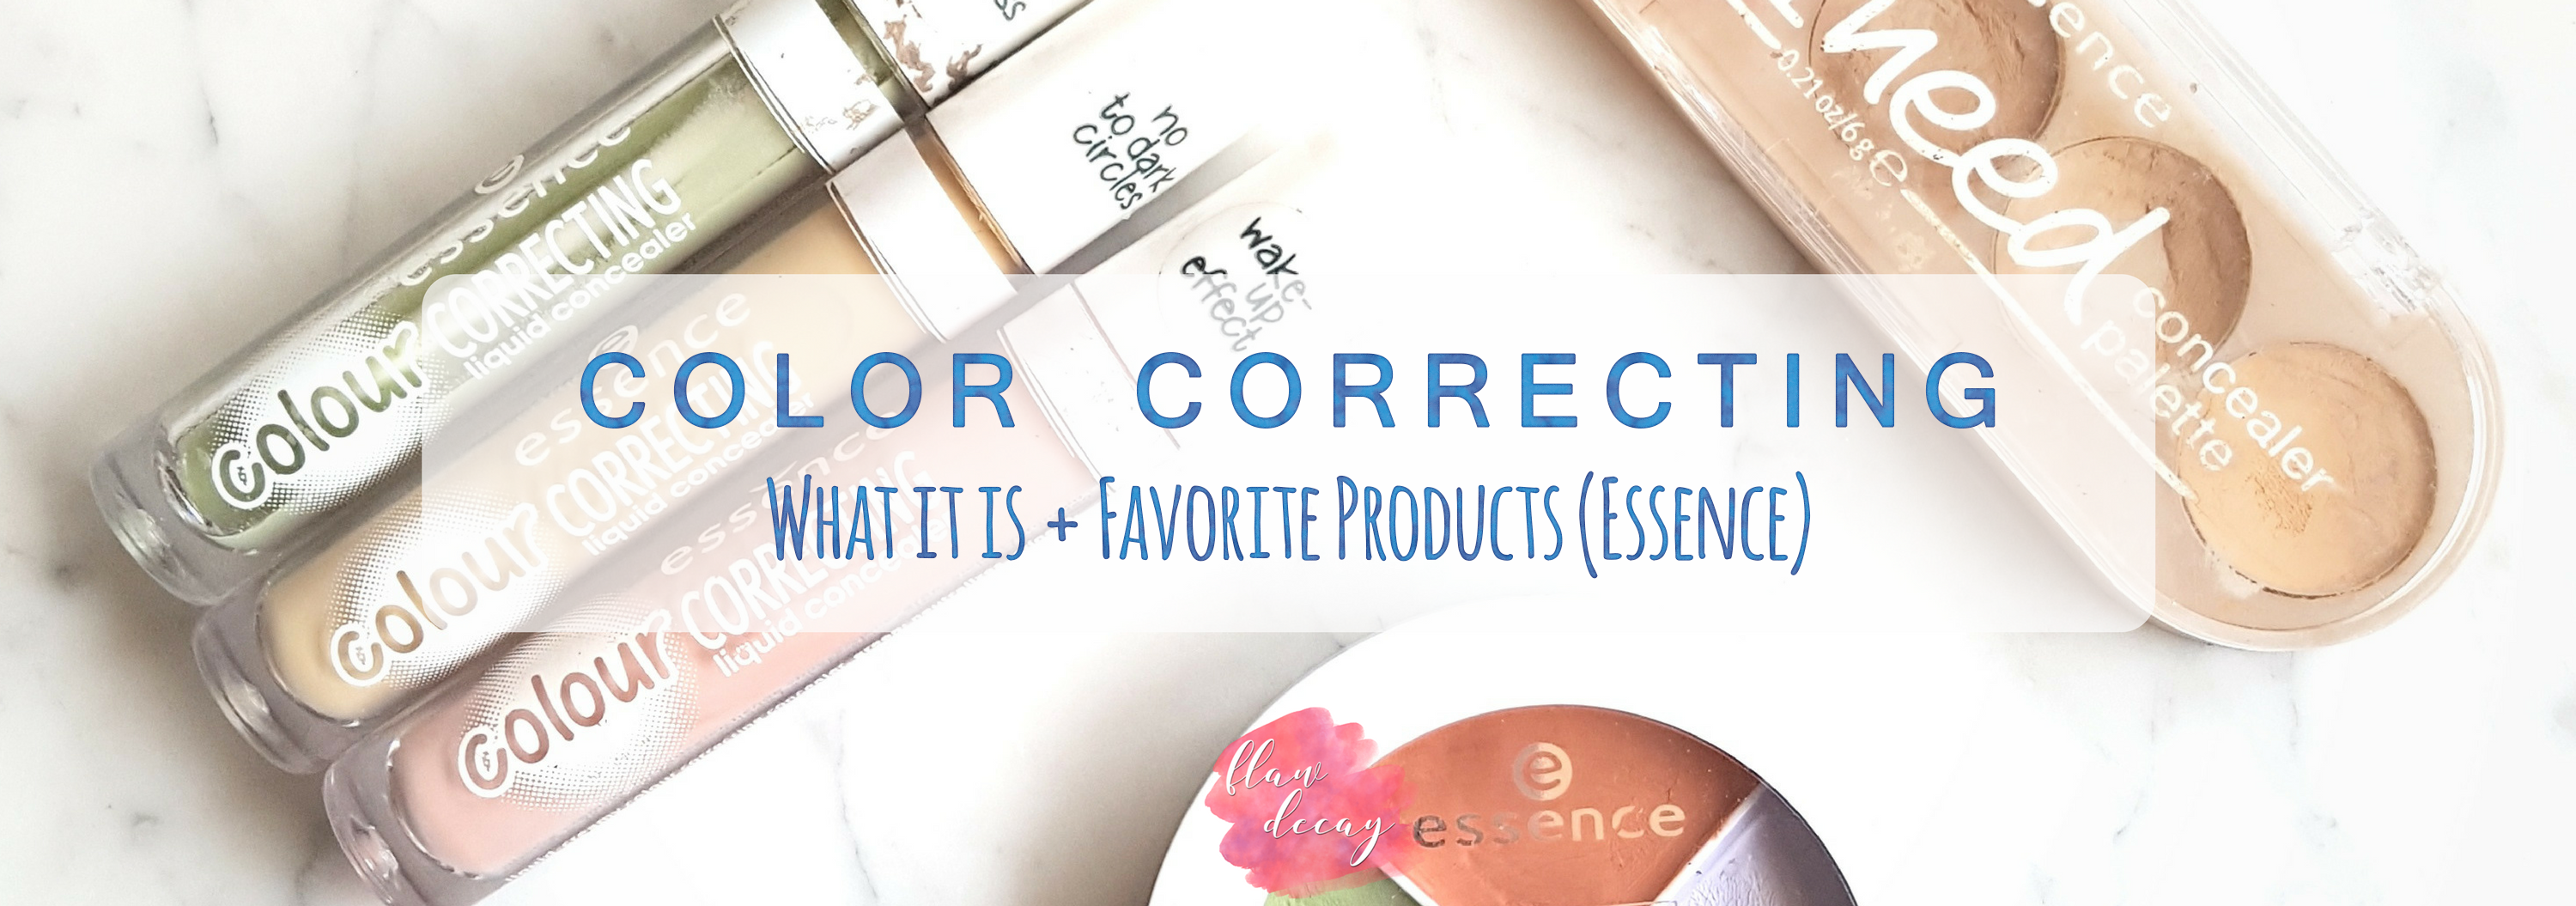 Color Correcting: What it is + Favorite Products from Essence